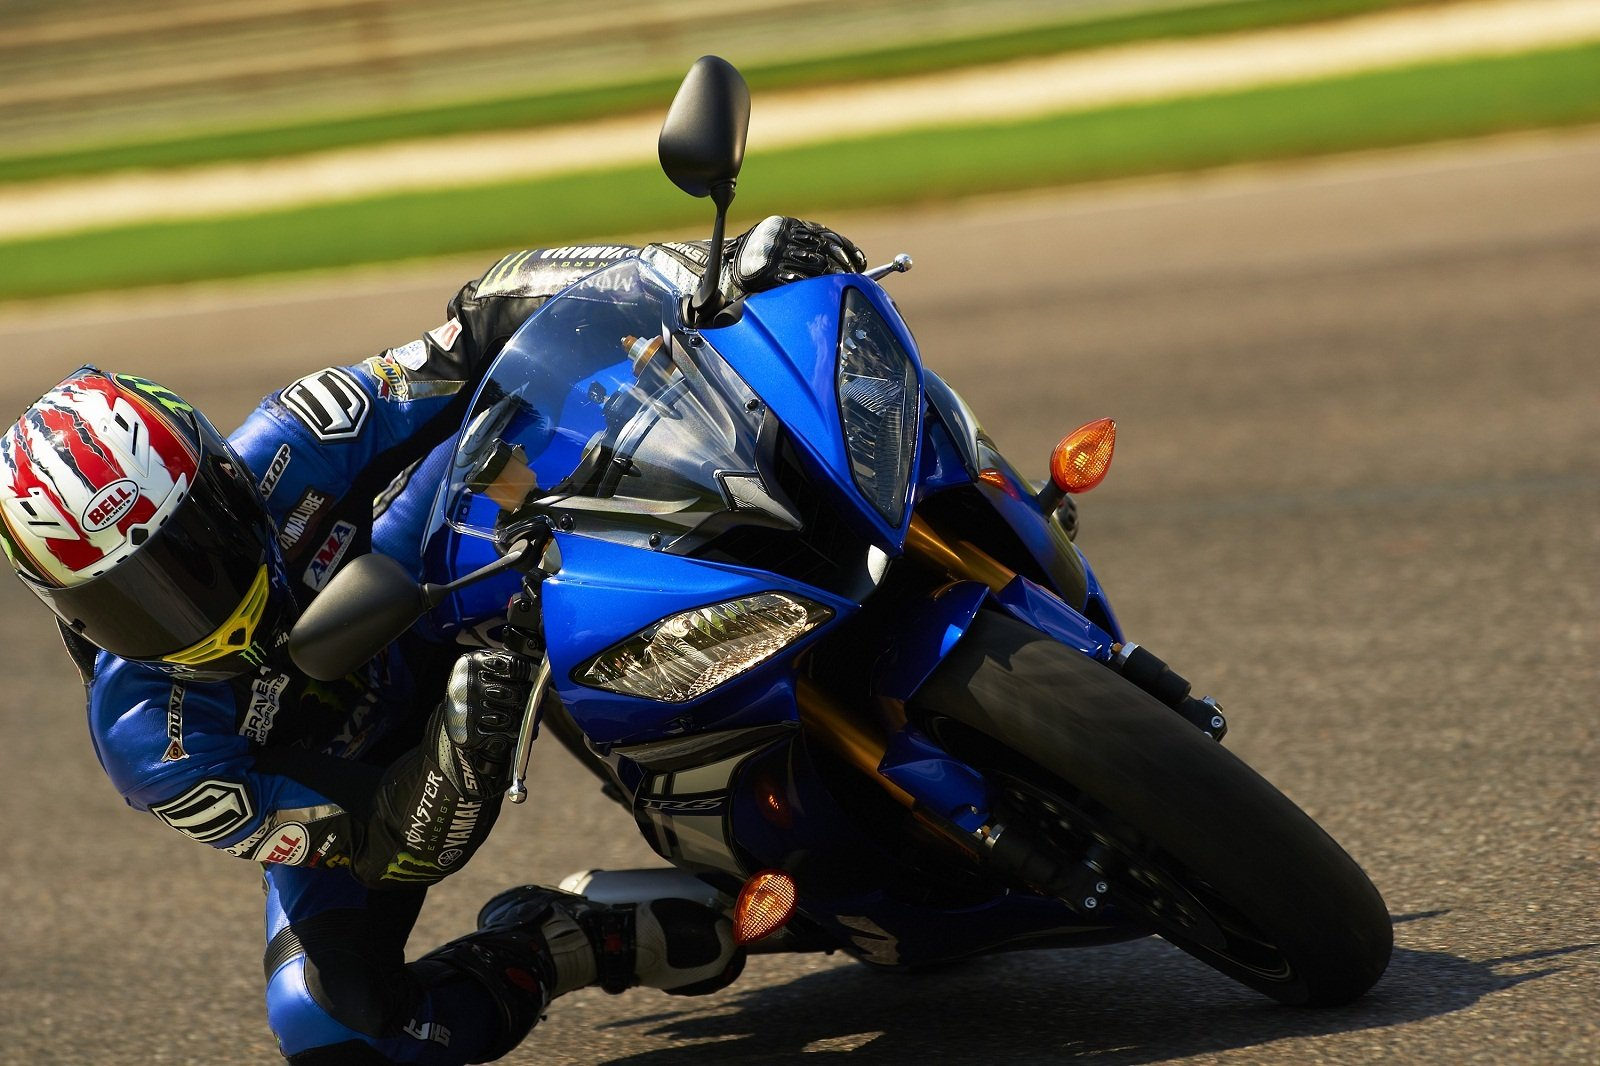 2018 - 2019 Yamaha YZF-R1 / R1M Pictures, Photos